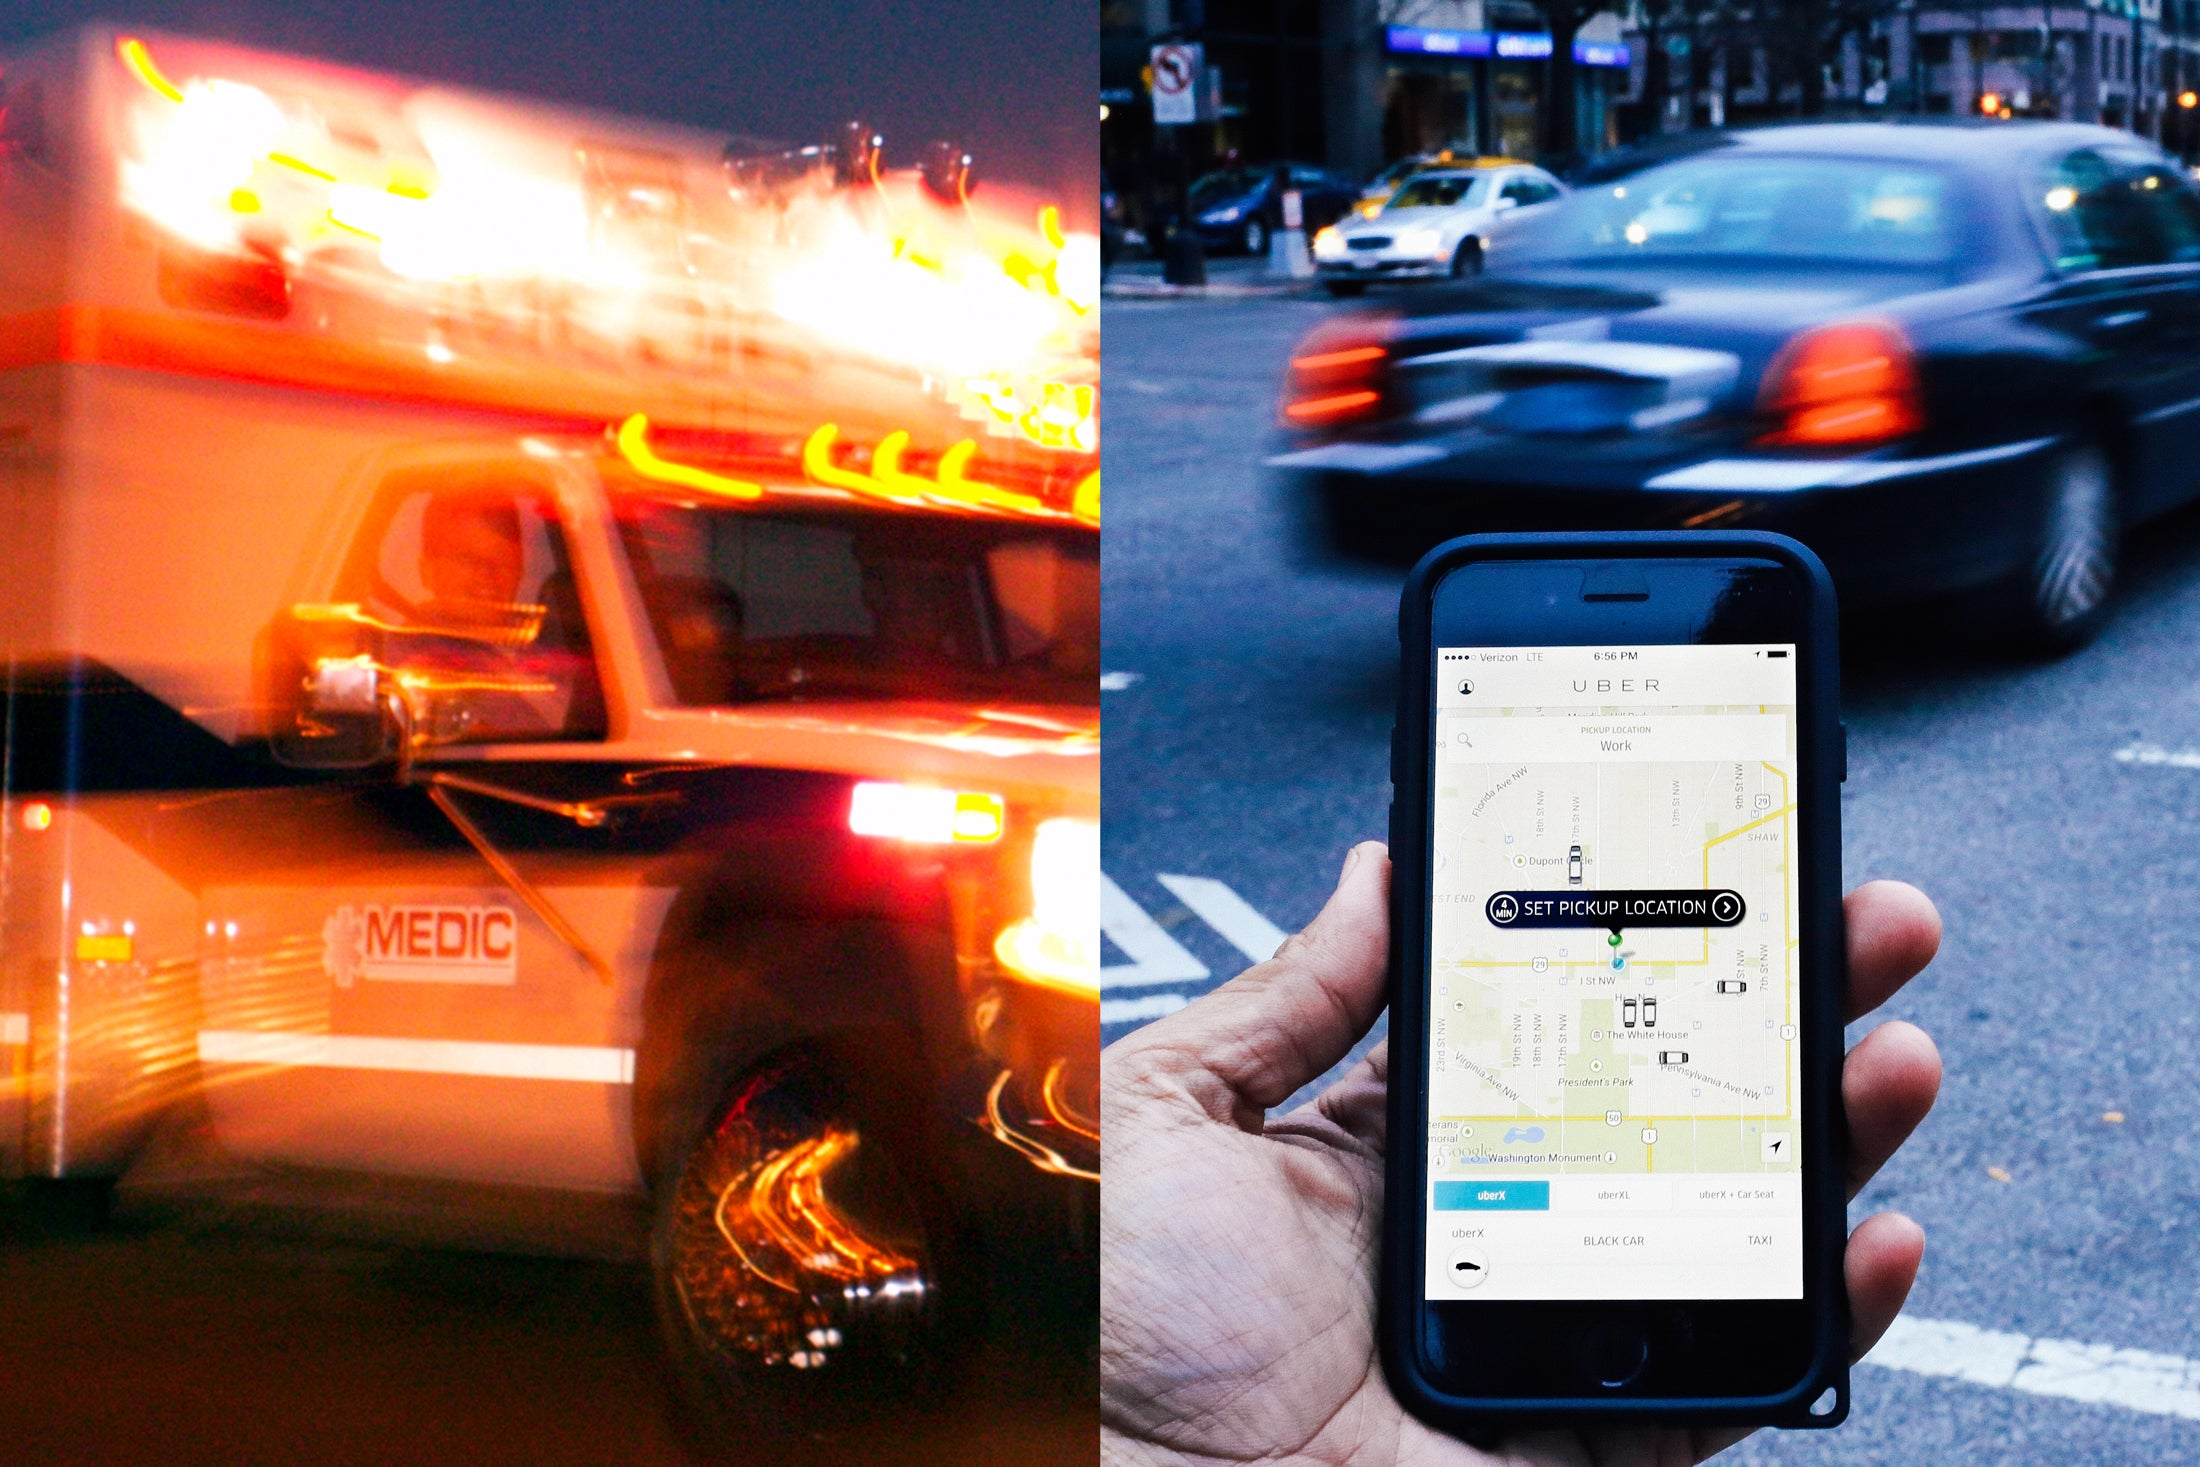 At left, an ambulance. At right, a hand holds a phone with an open Uber app.